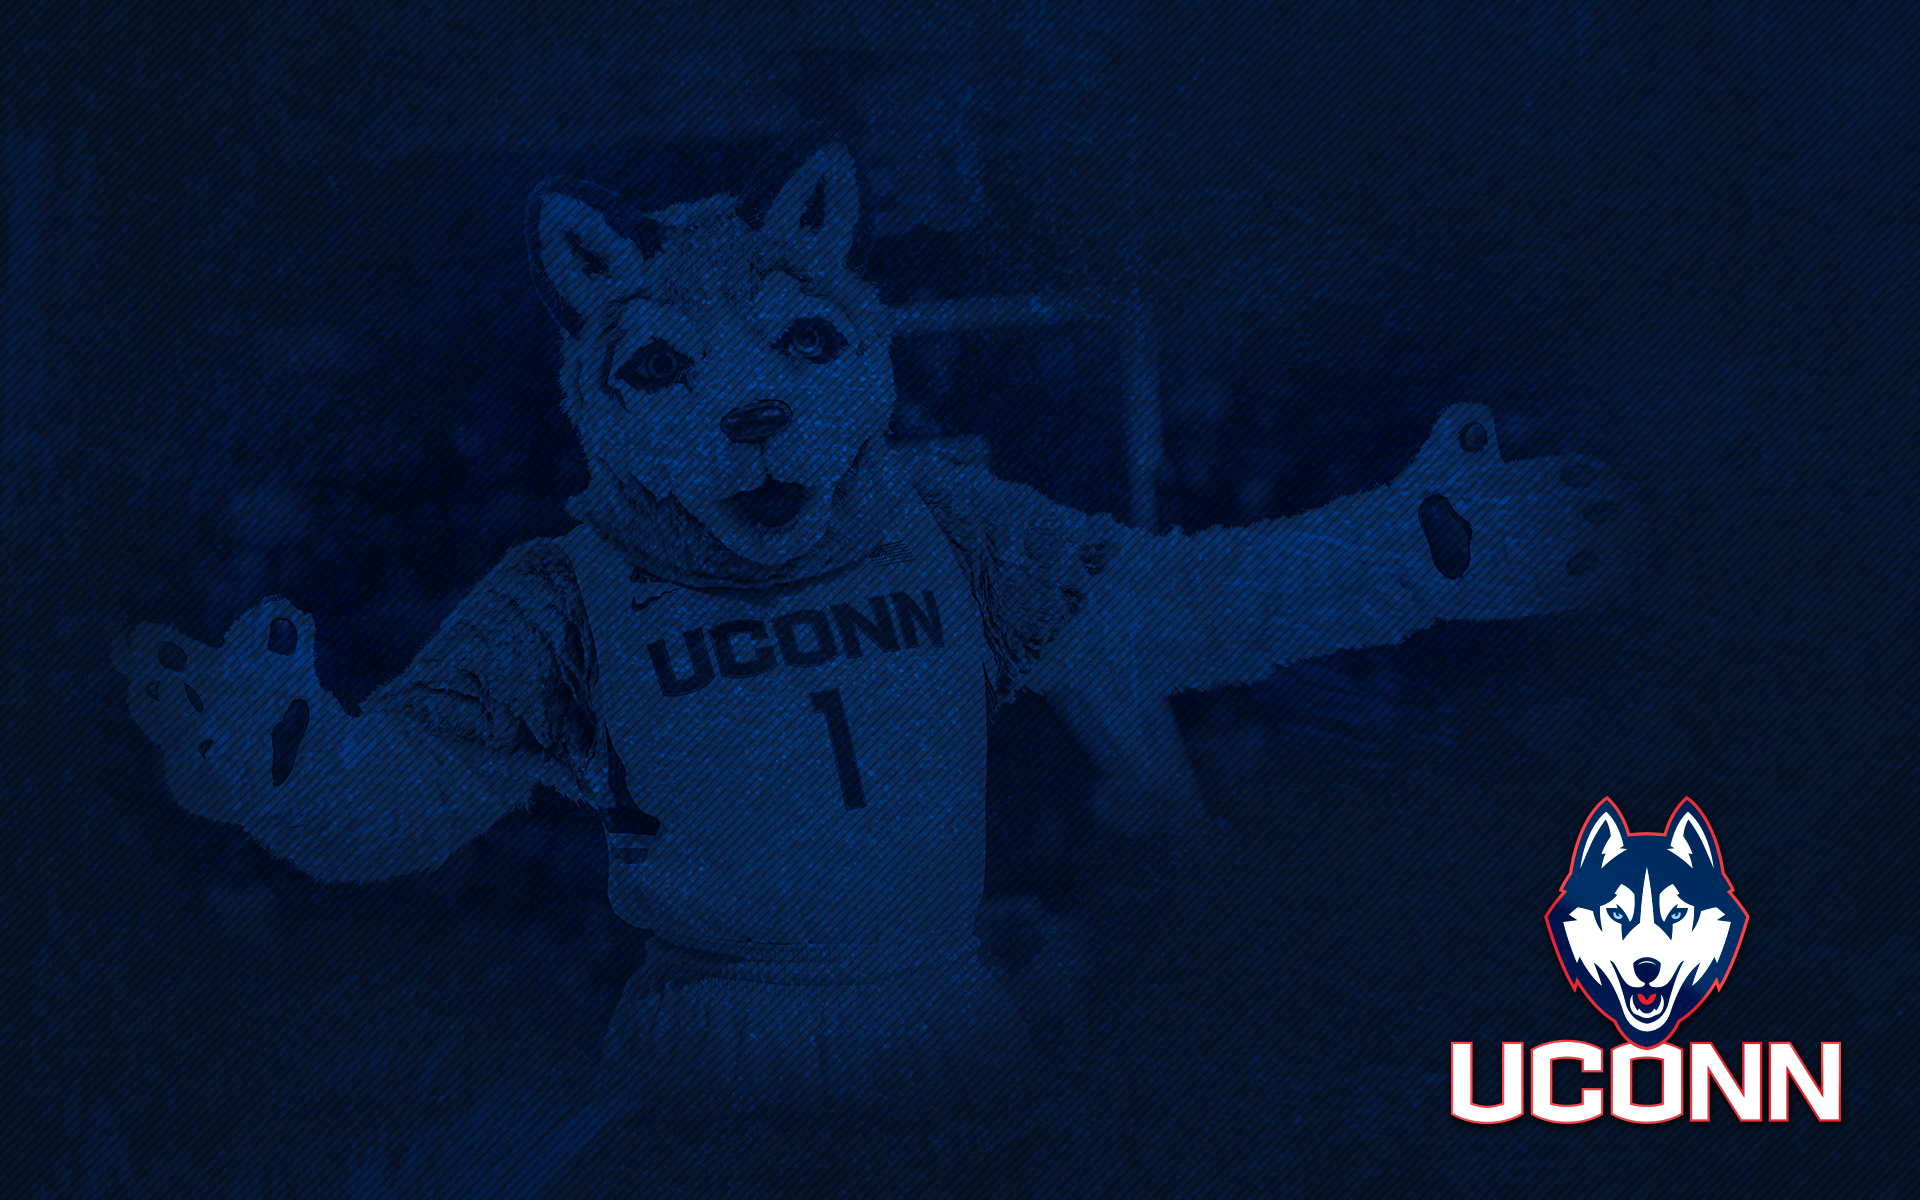 Uconn Huskies Basketball Wallpaper